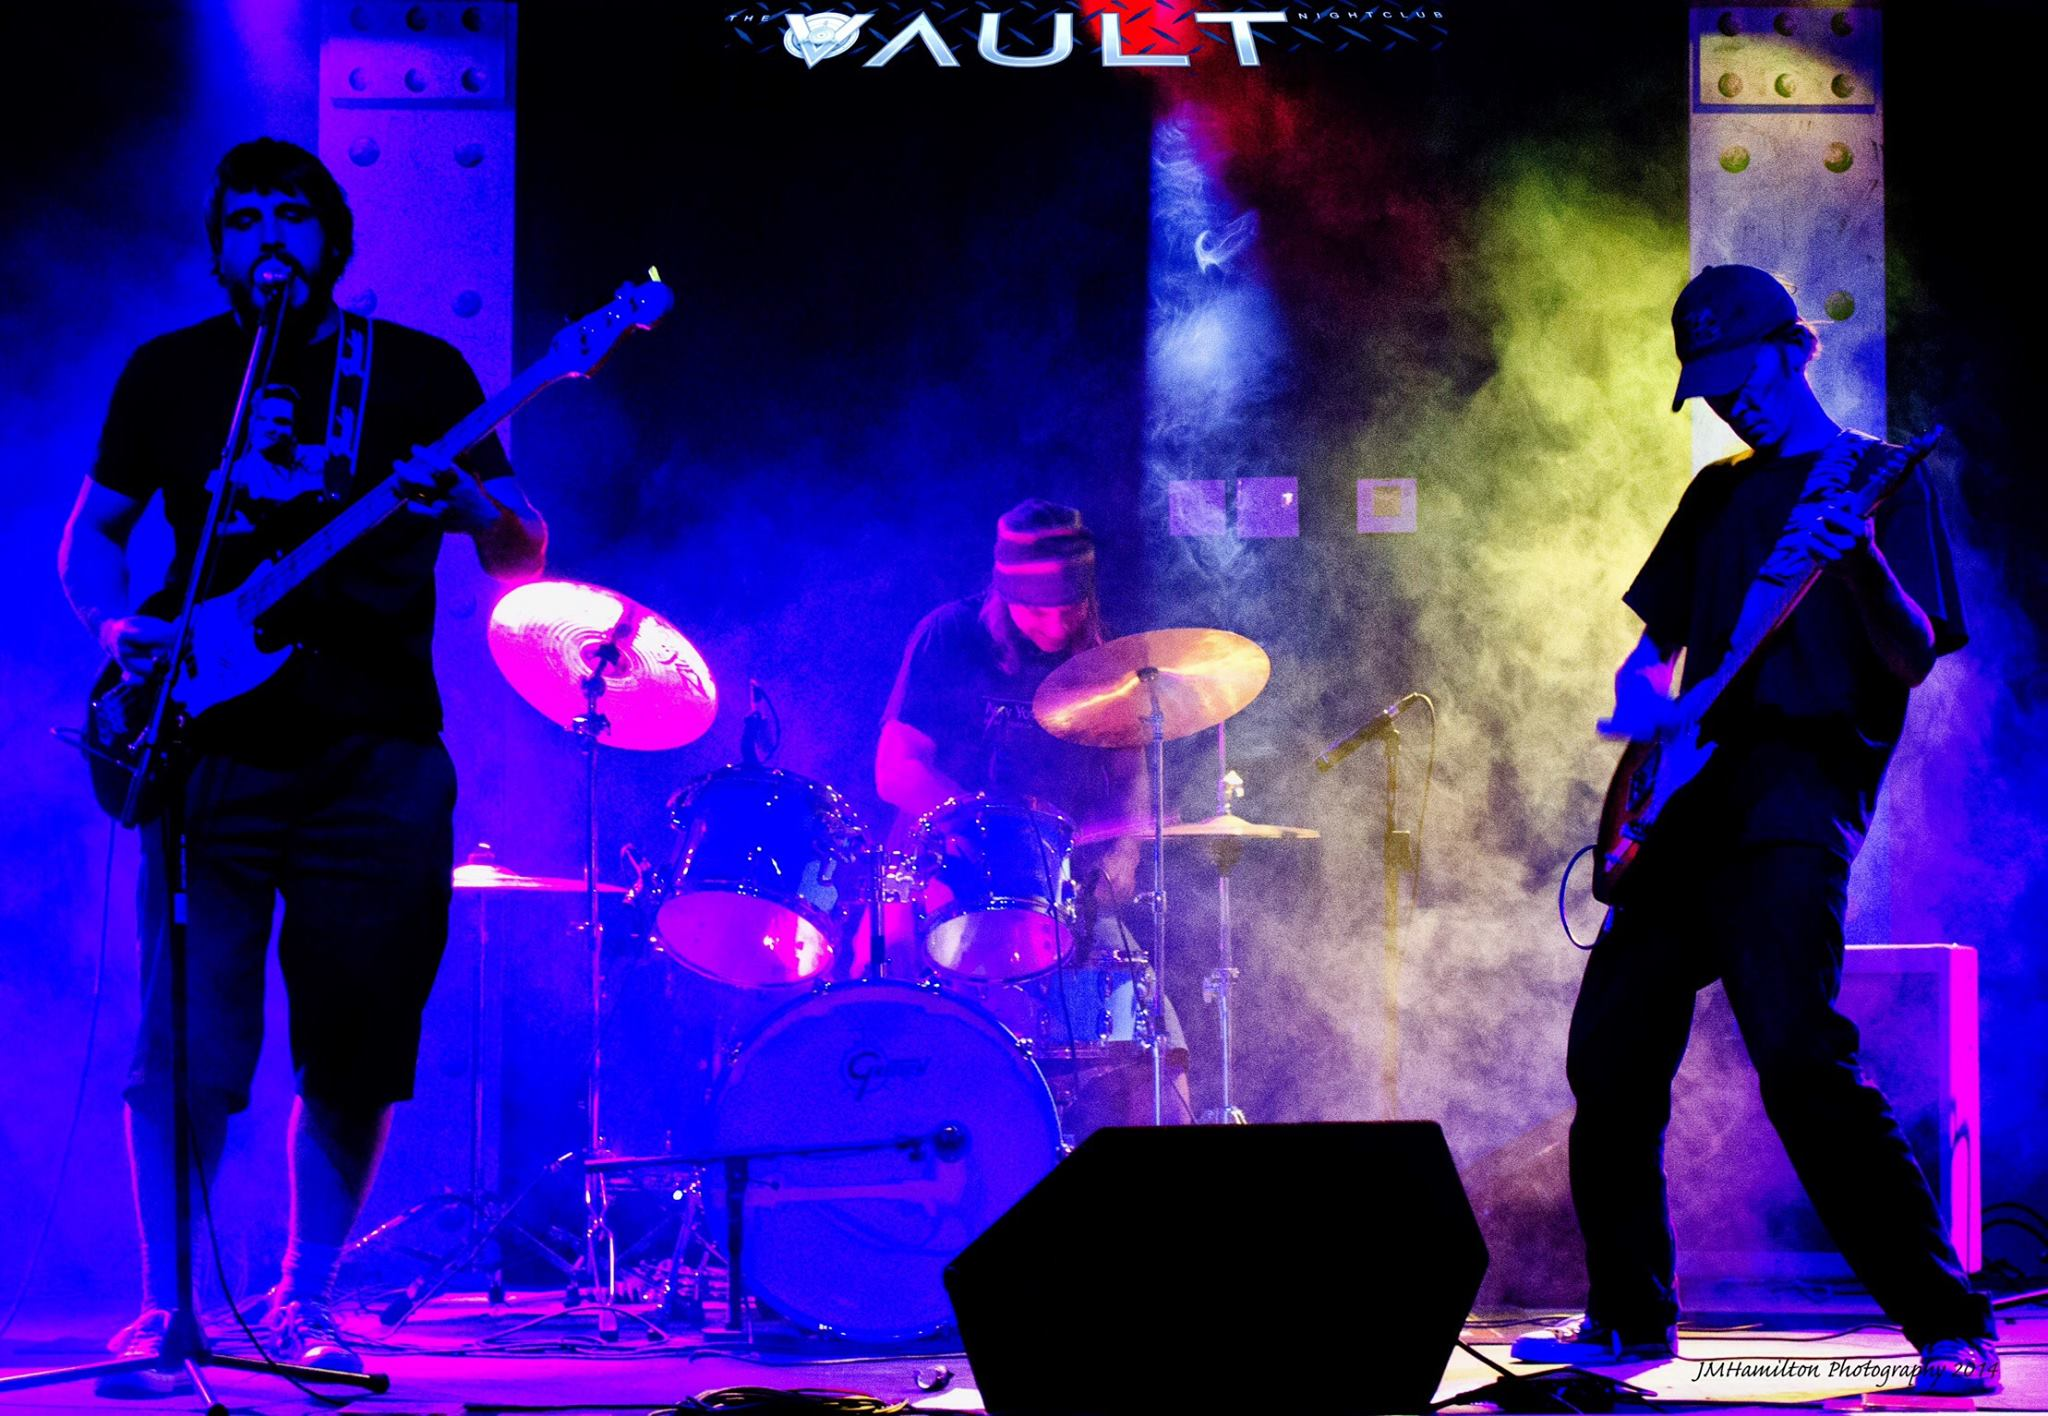 Doin' it live at The Vault, May 15, 2014